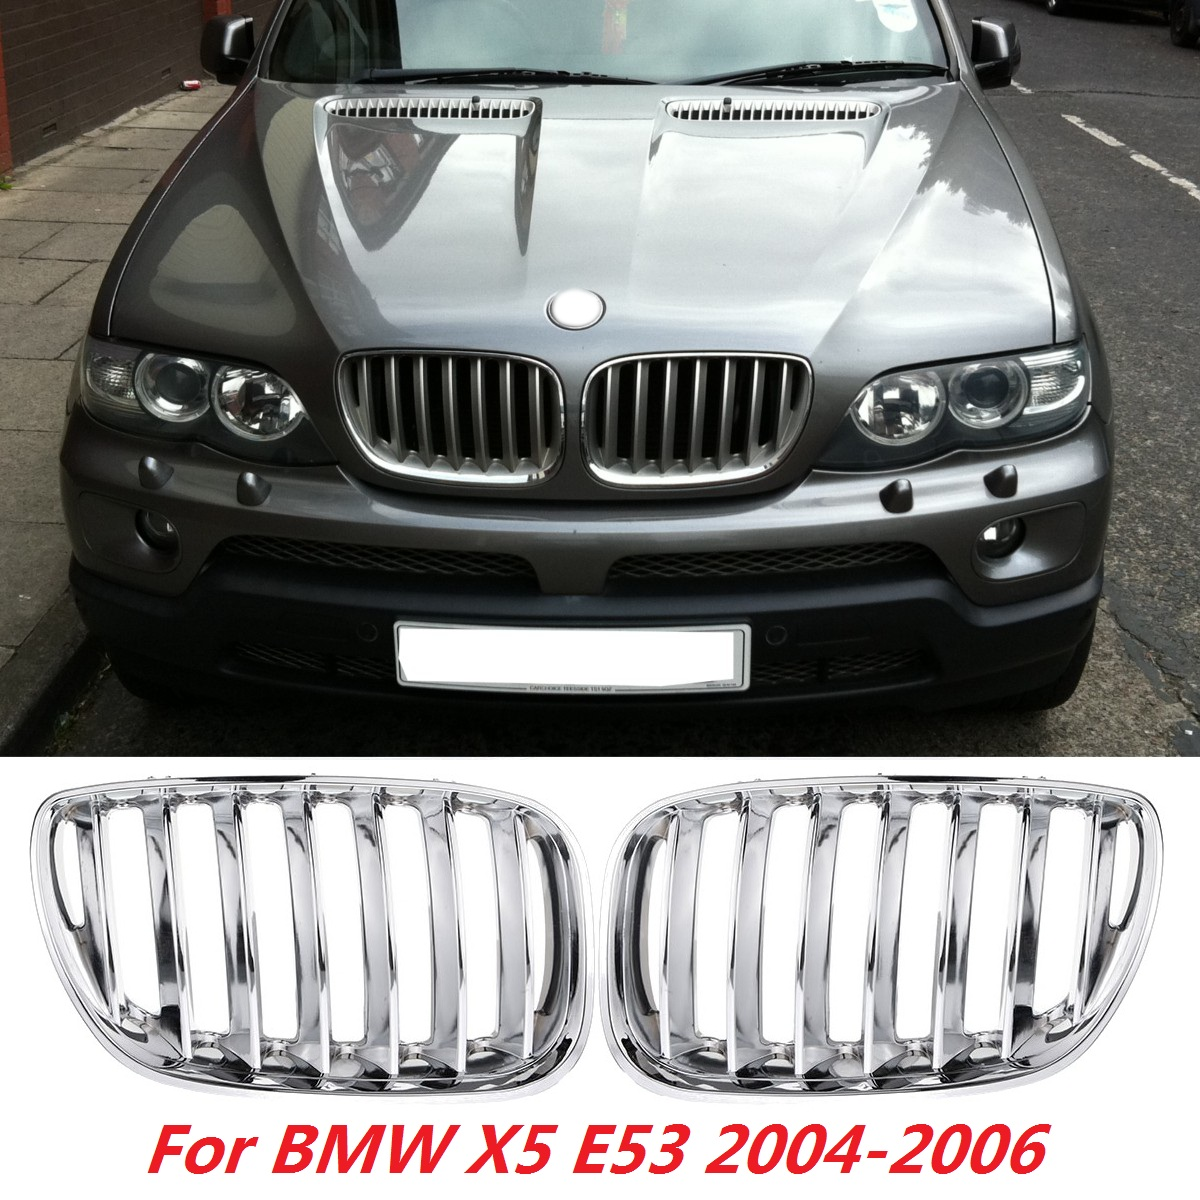 FOR BMW X5 SERIES E53 1999-2003 NEW FRONT KIDNEY GRILLE MATTE BLACK PAIR SET